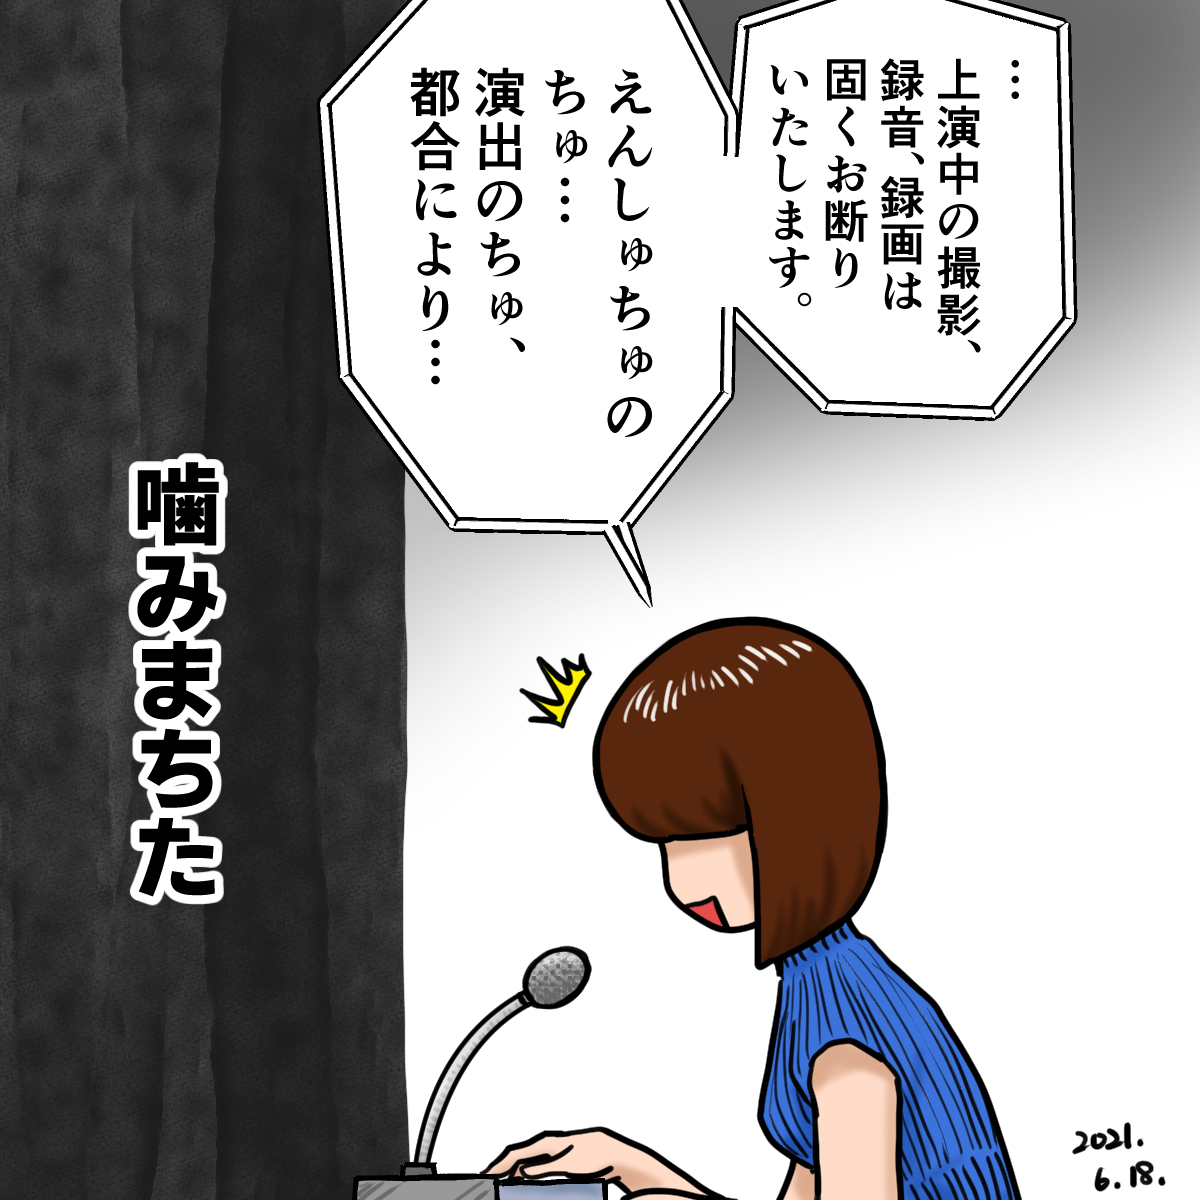 2EE168D0-DB81-4811-983F-F3A27BC29830.png